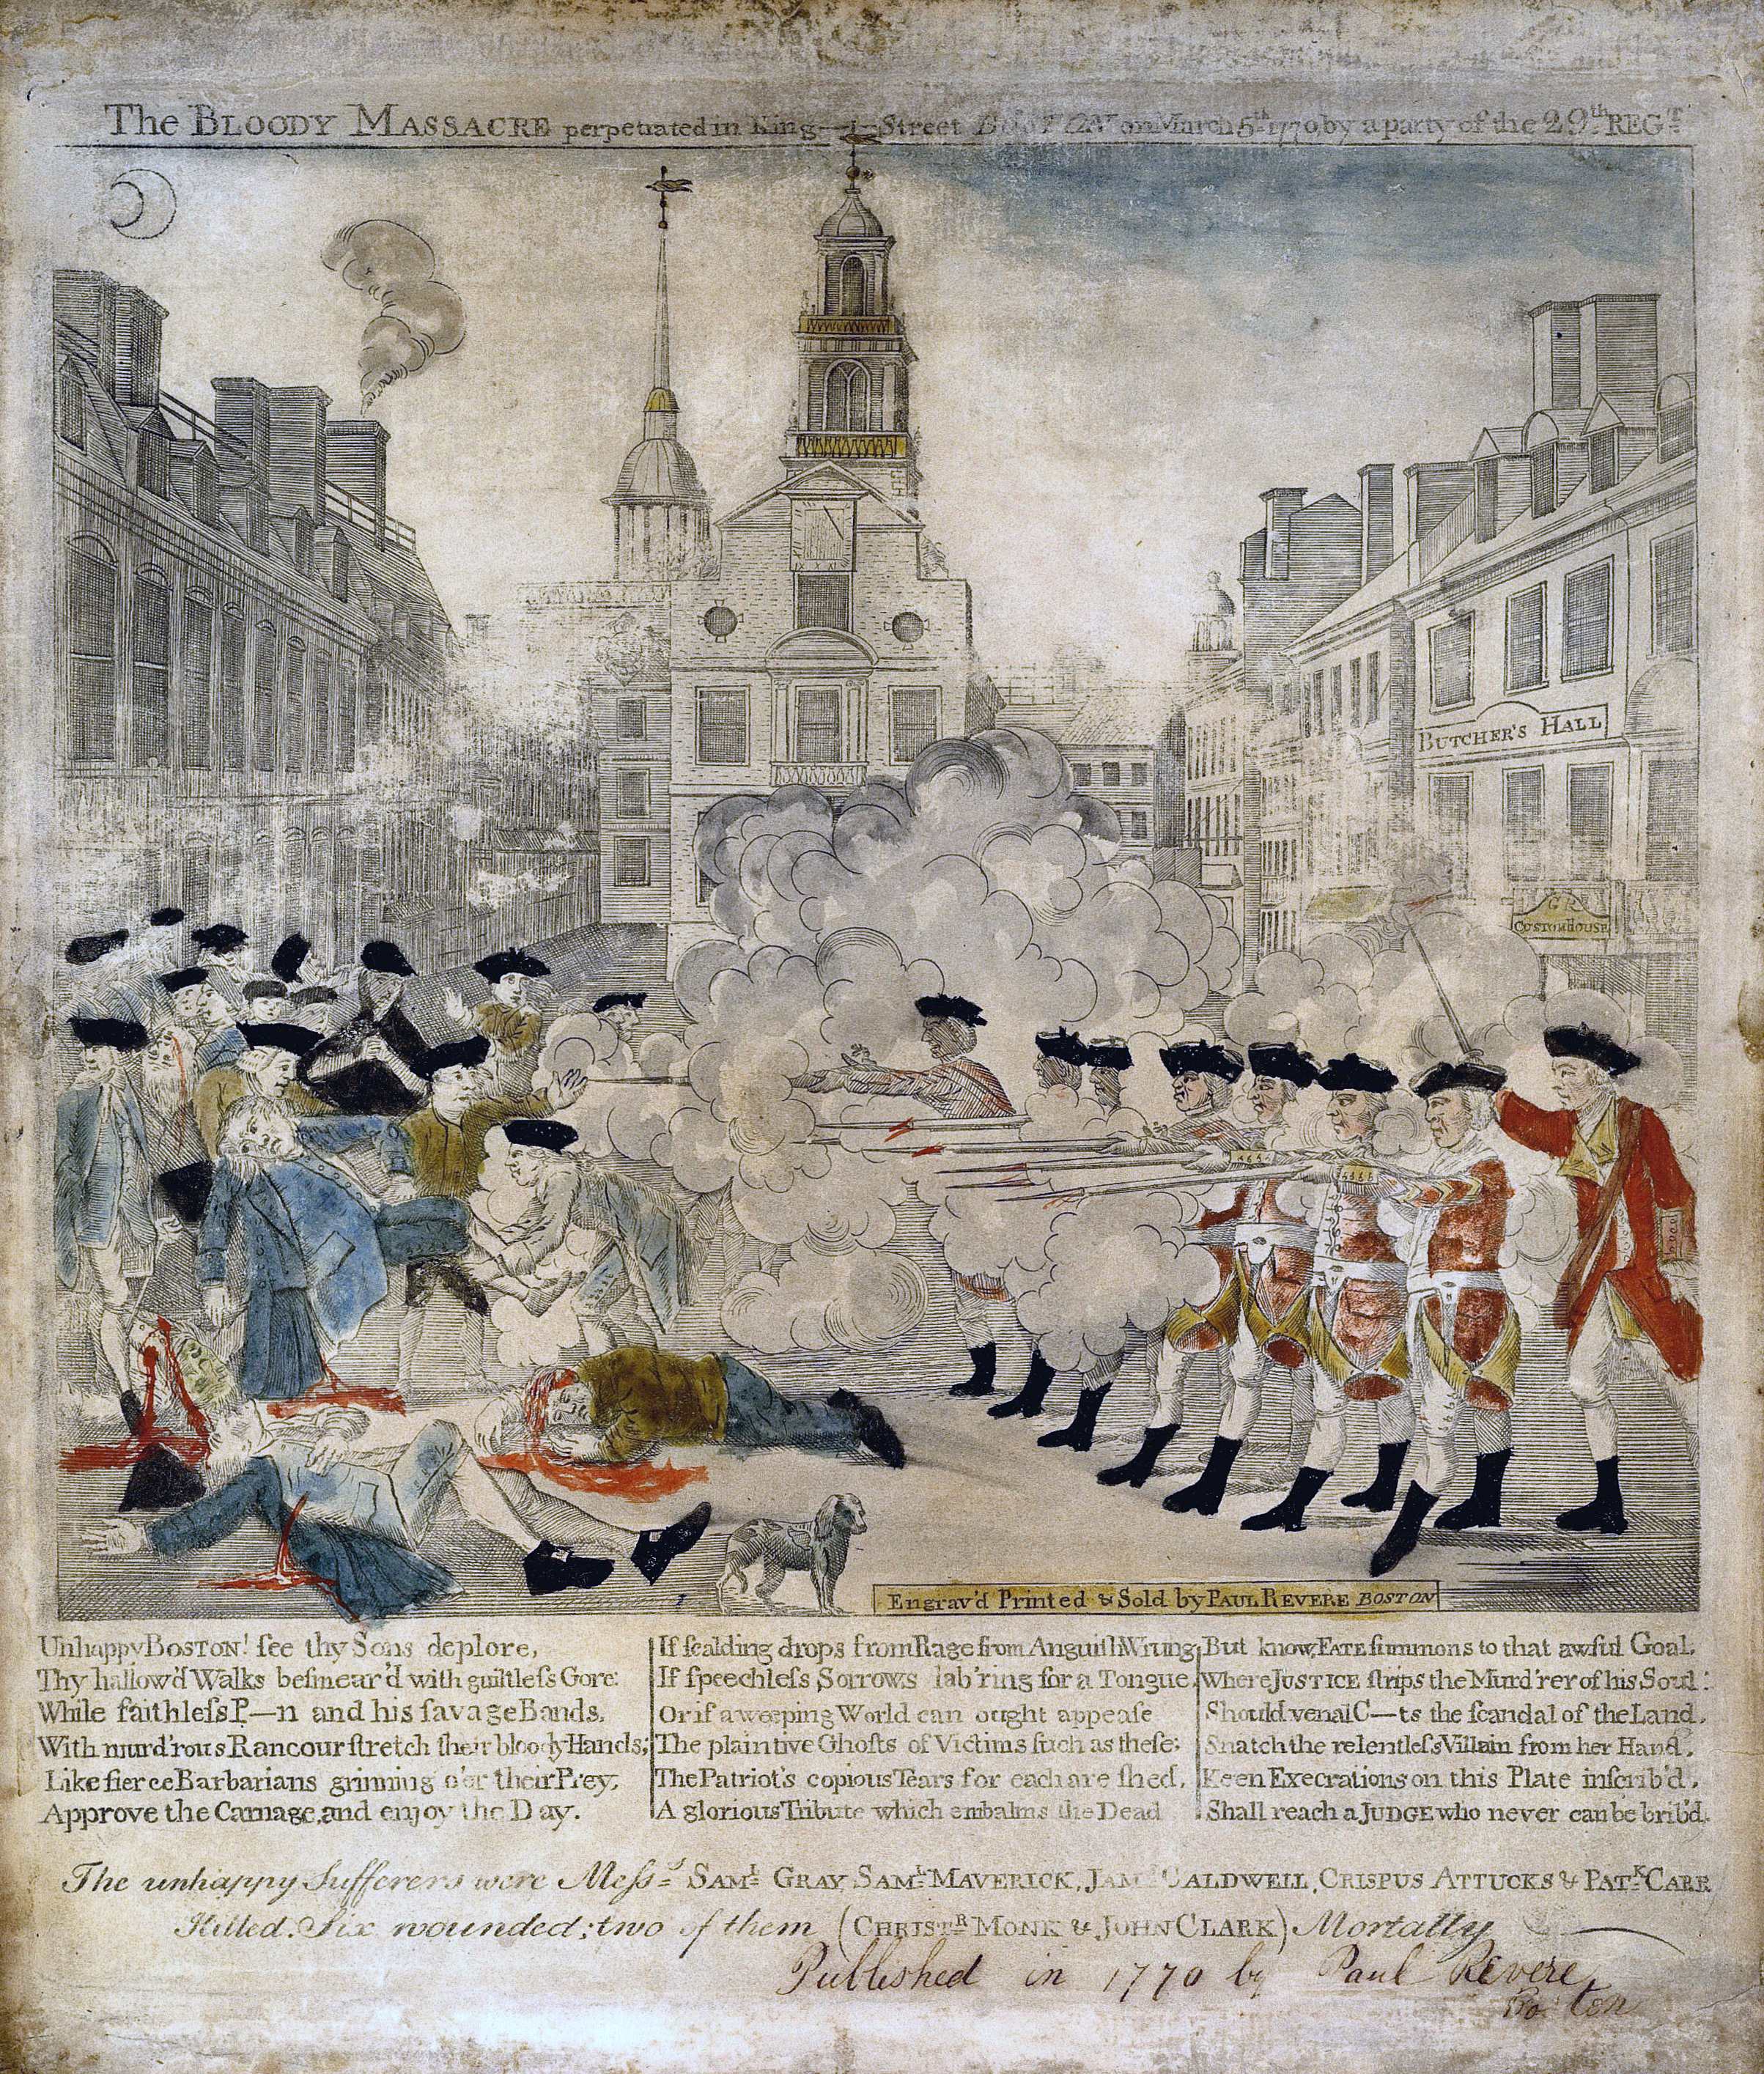 A sensationalized portrayal of the Boston Massacre (March 5, 1770): Such images were used to breed discontent and foster unity among the American colonists ...